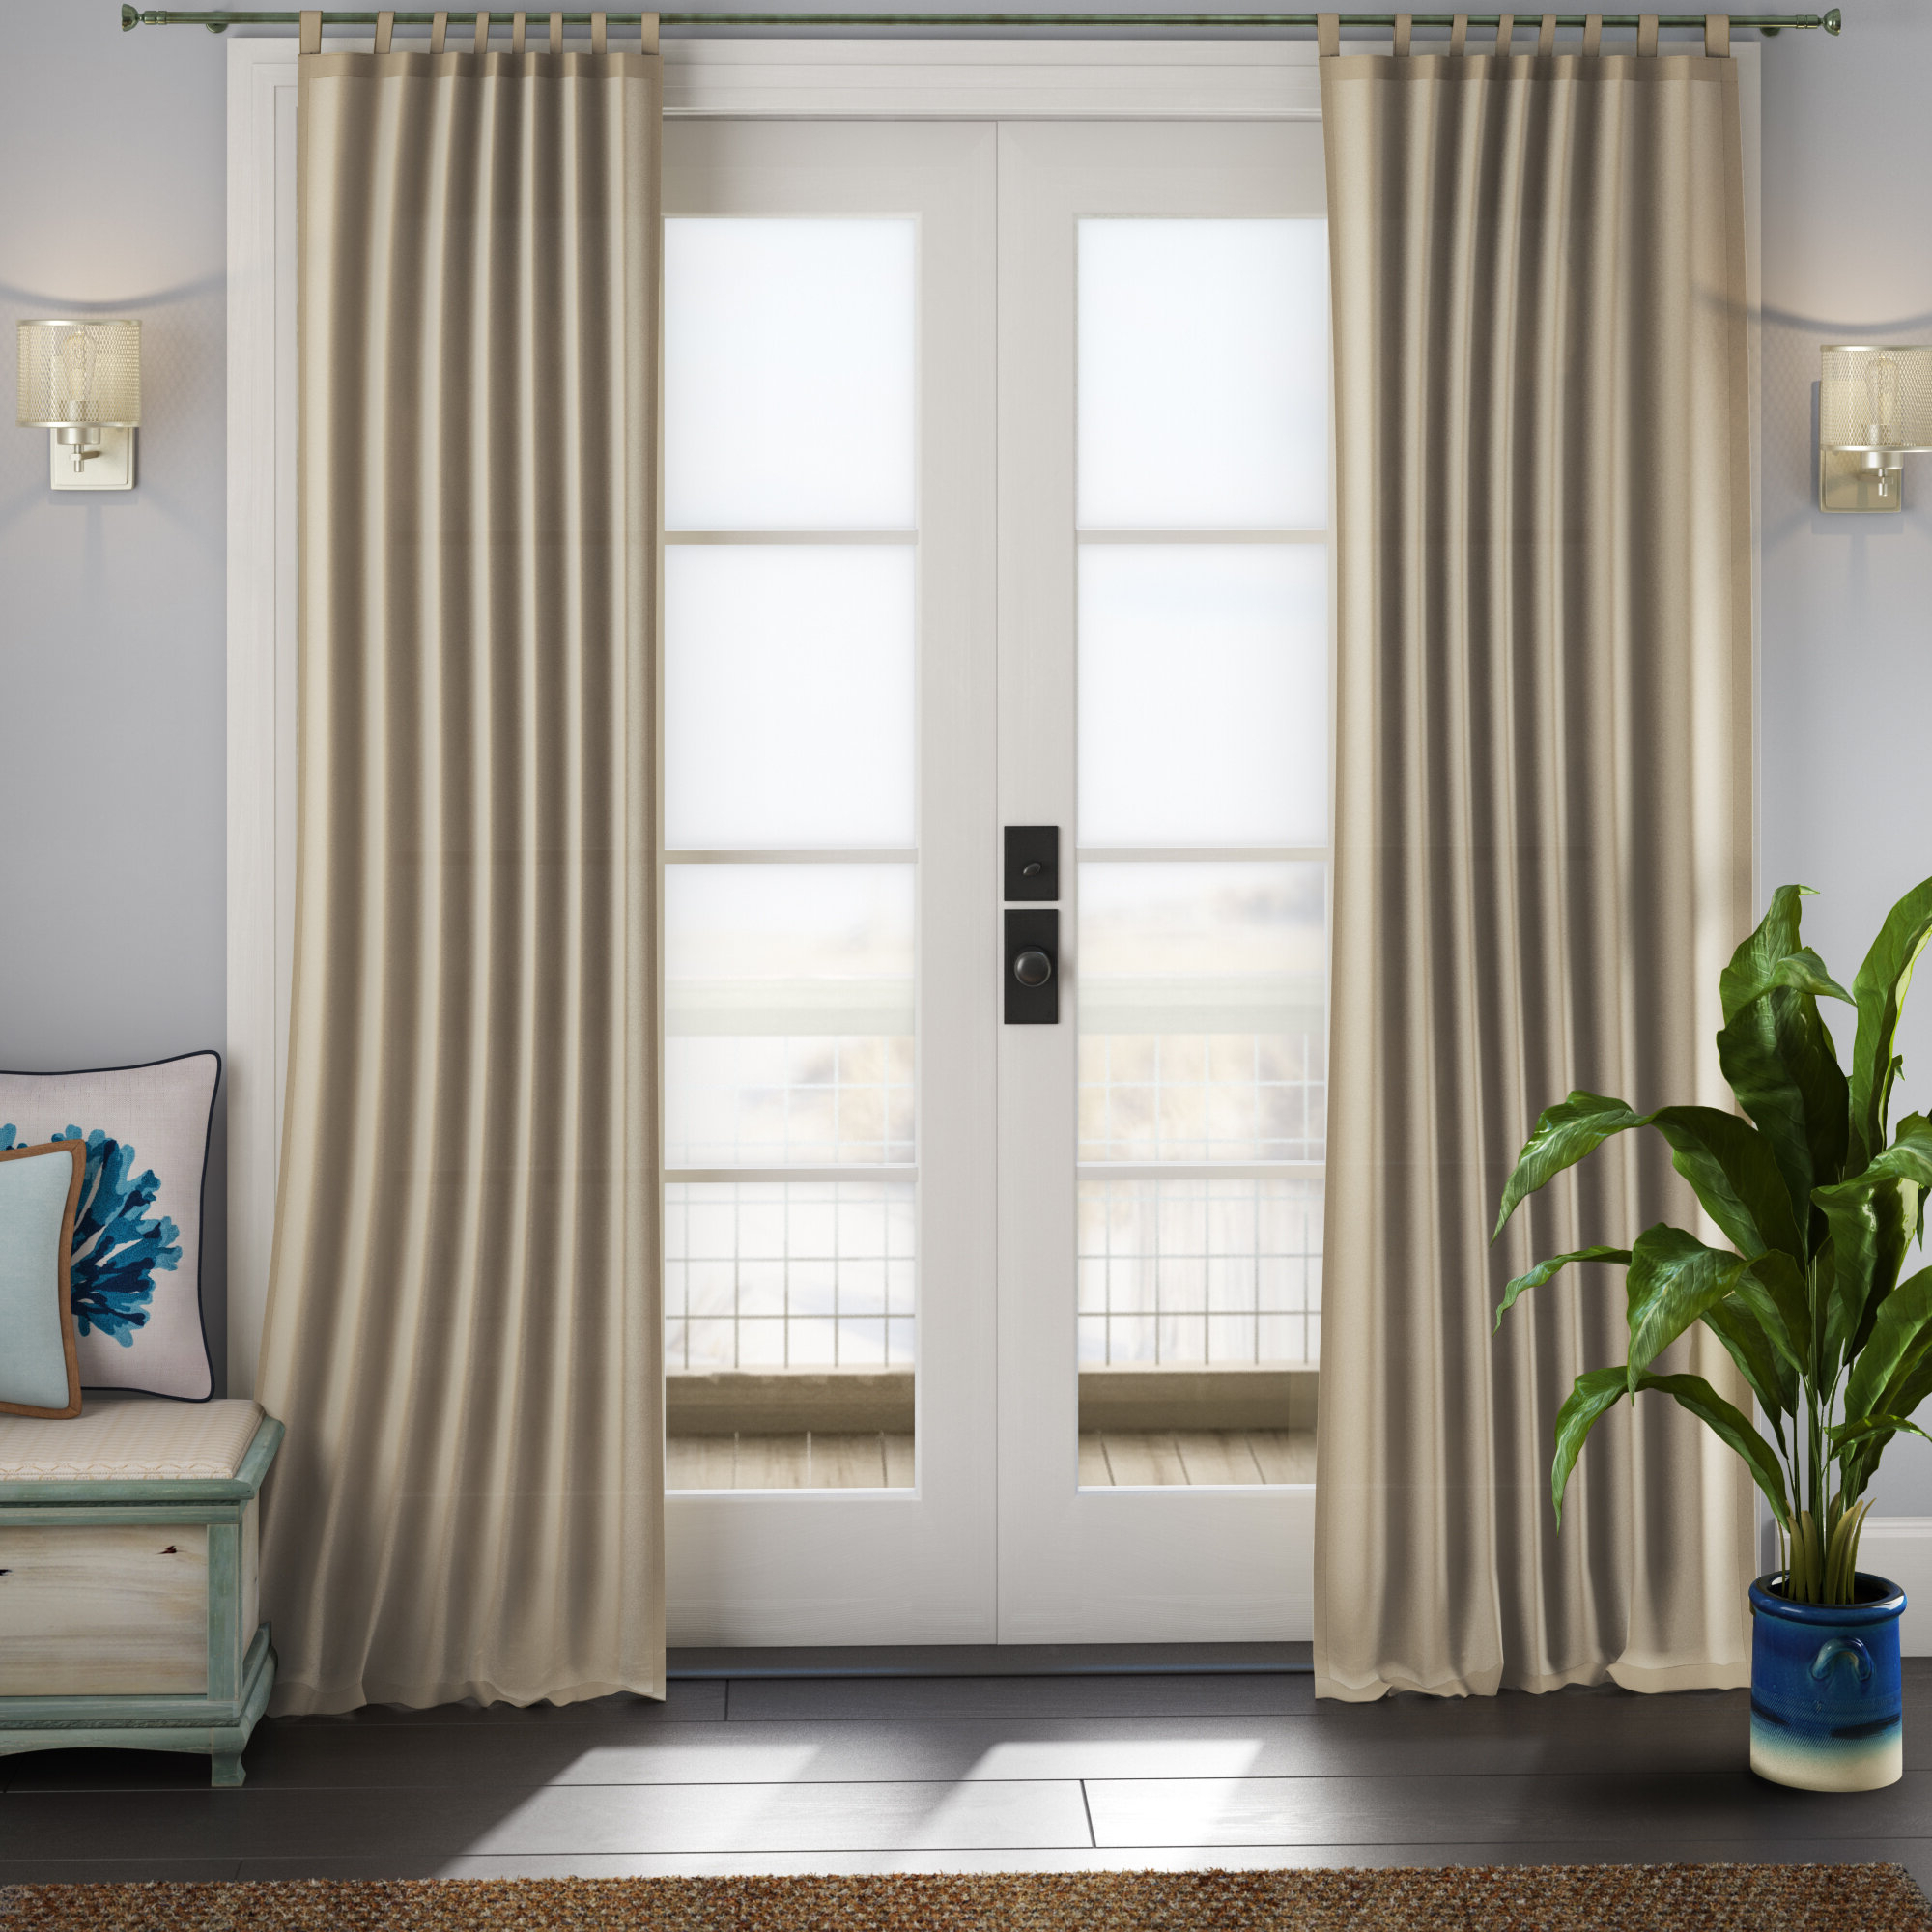 Matine Indoor/outdoor Curtain Panels Pertaining To 2021 Sinead Indoor/outdoor Solid Room Darkening Tab Top Single Curtain Panel (View 13 of 20)